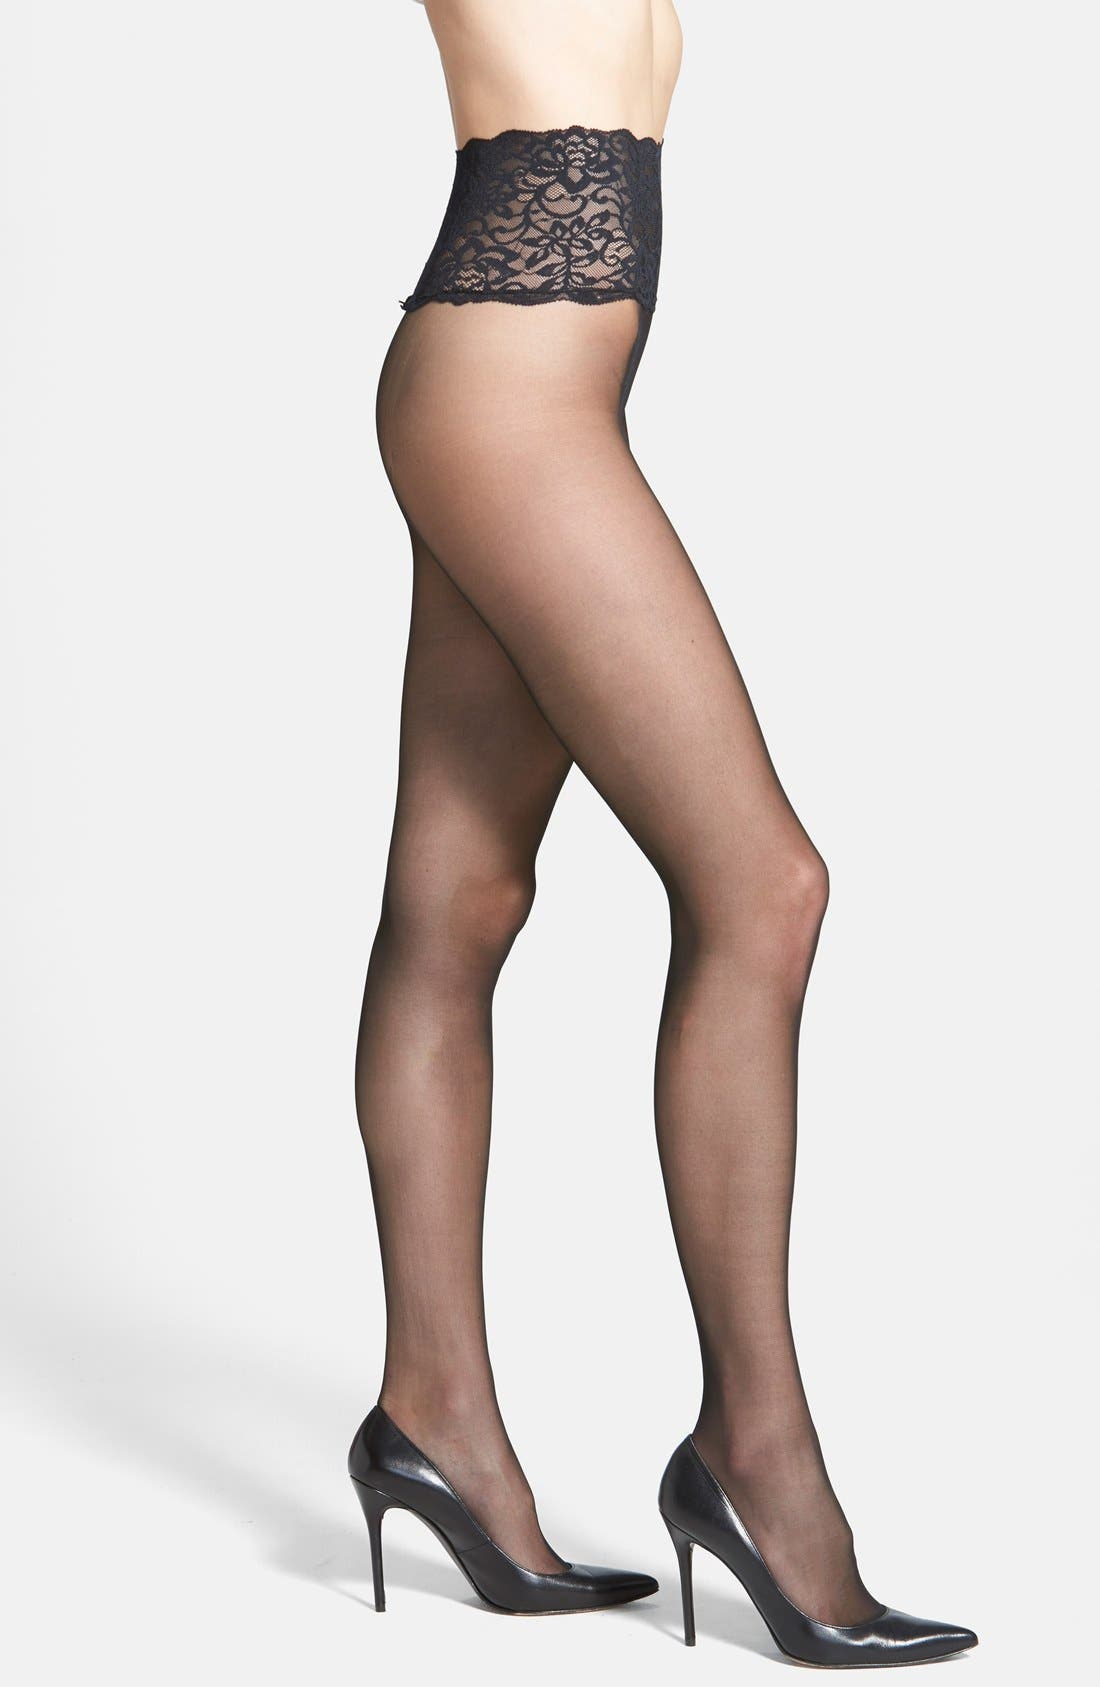 COMMANDO The Sexy Sheer Pantyhose